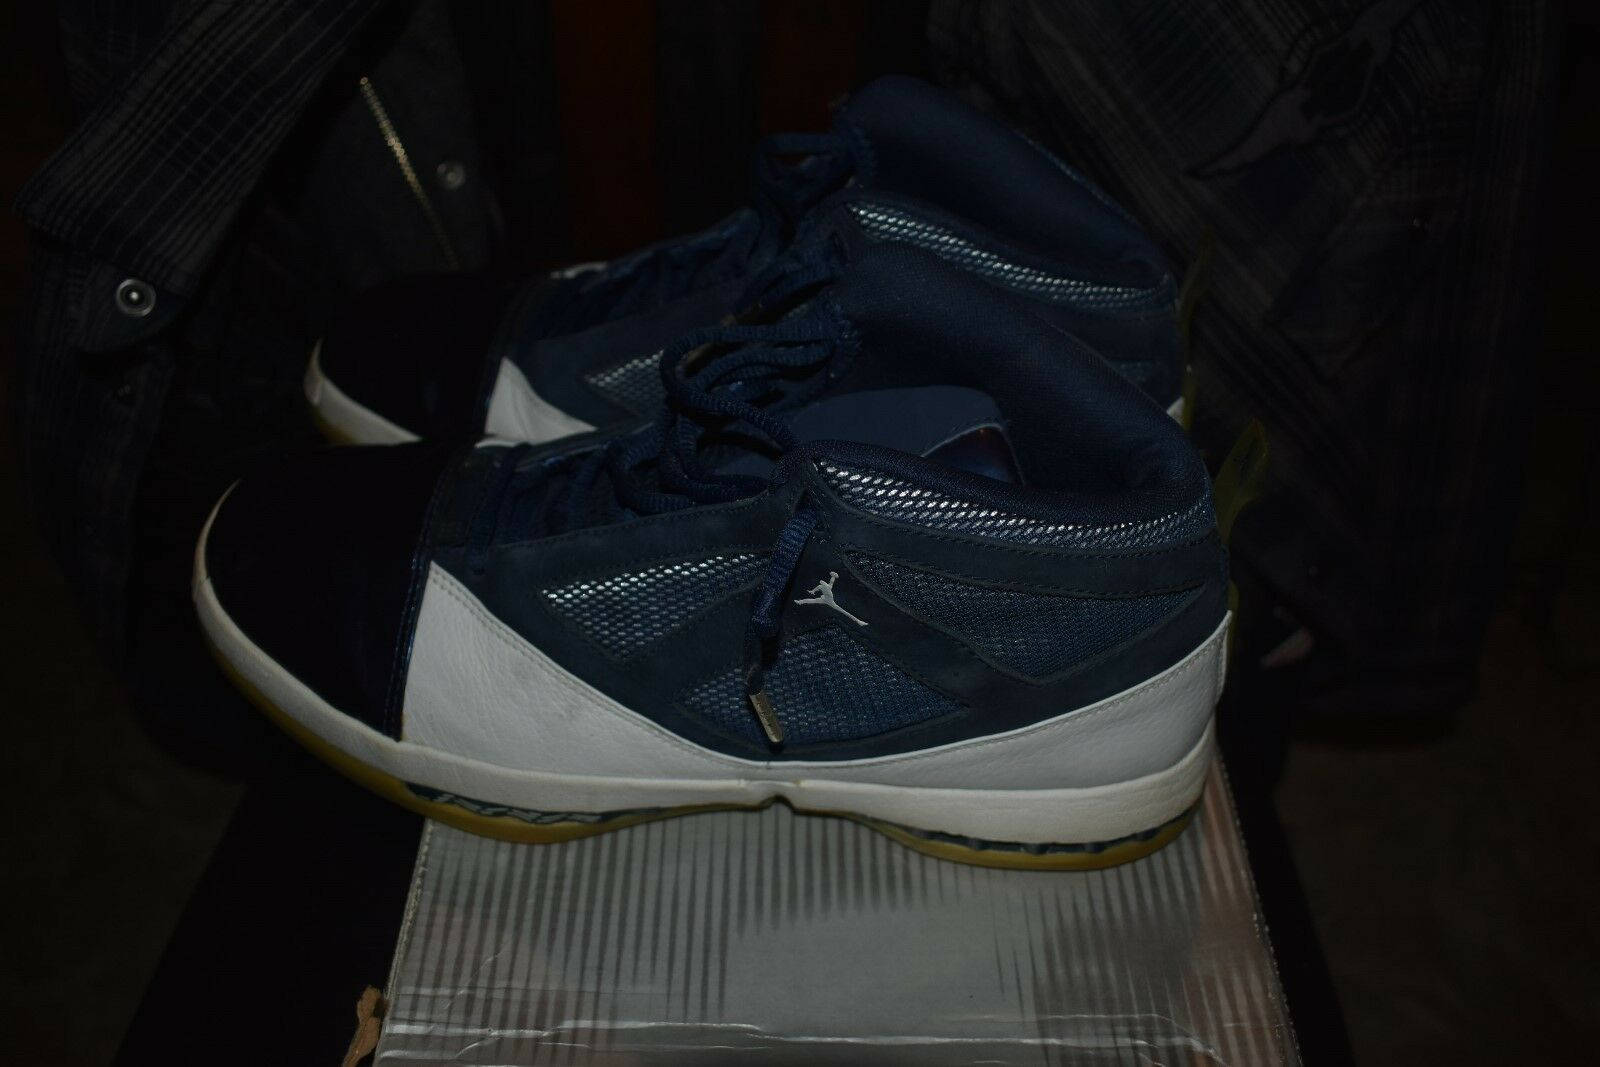 SWEET NIKE AIR JORDAN XVI Price reduction 3/4 HIGH WHITE/MIDNIGHT NAVY 136059-141 SIZE 11 Special limited time